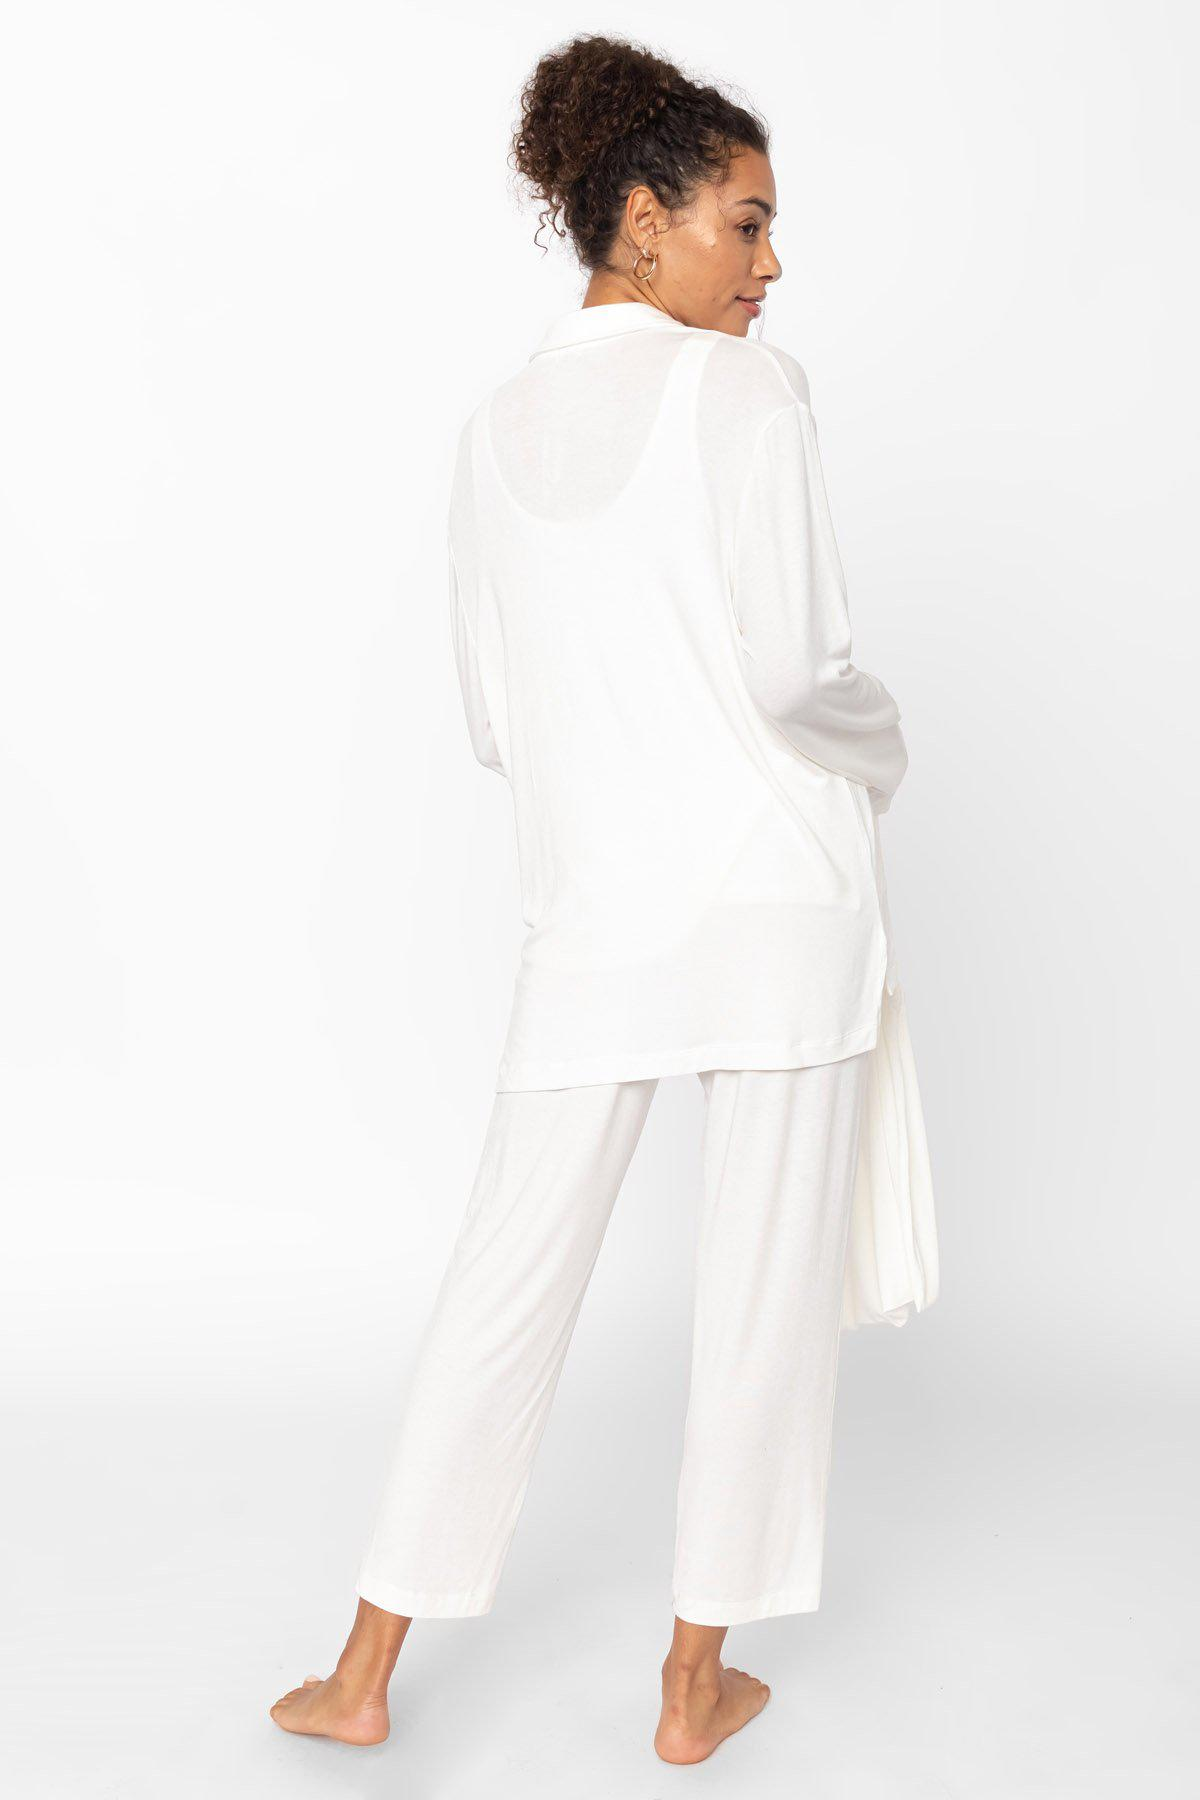 Nora Nuit Half Button Up - White 2